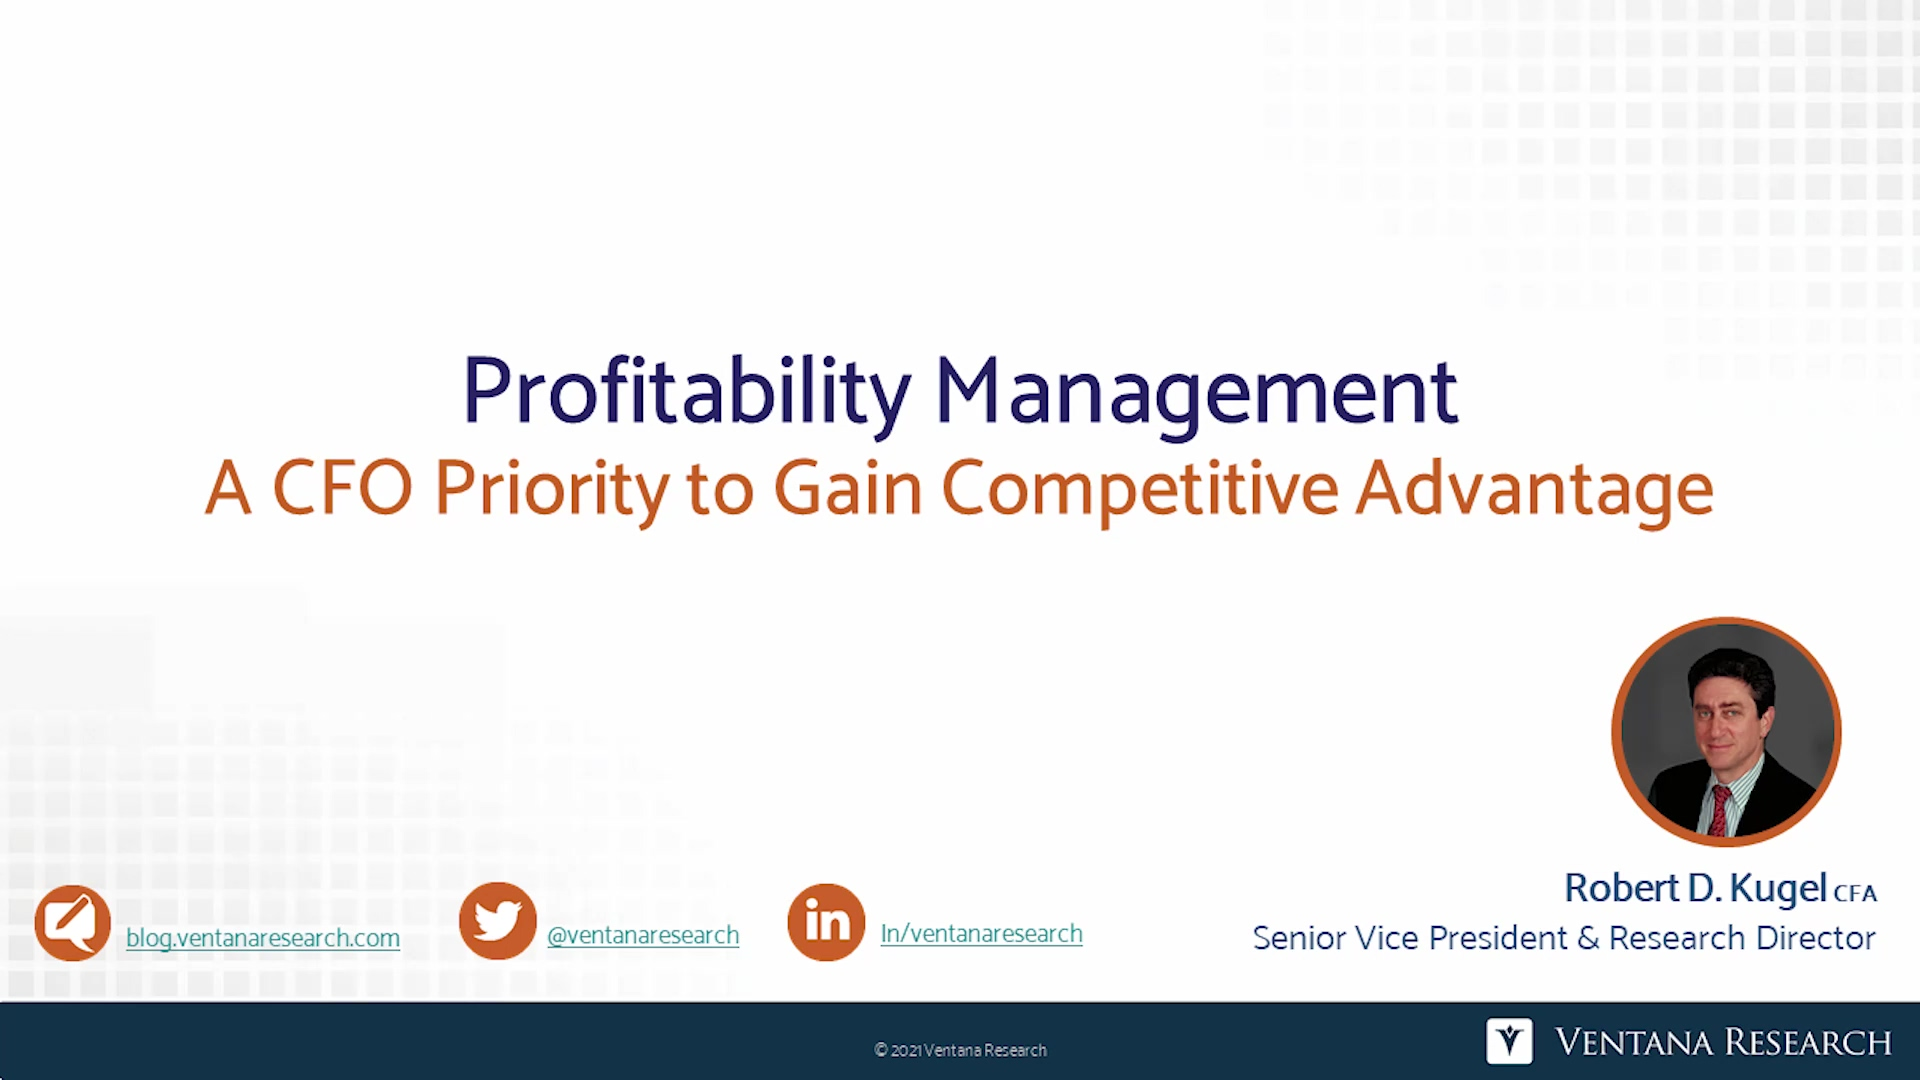 Ventana_Research_Profitability_Management_Video_AP_Kugel